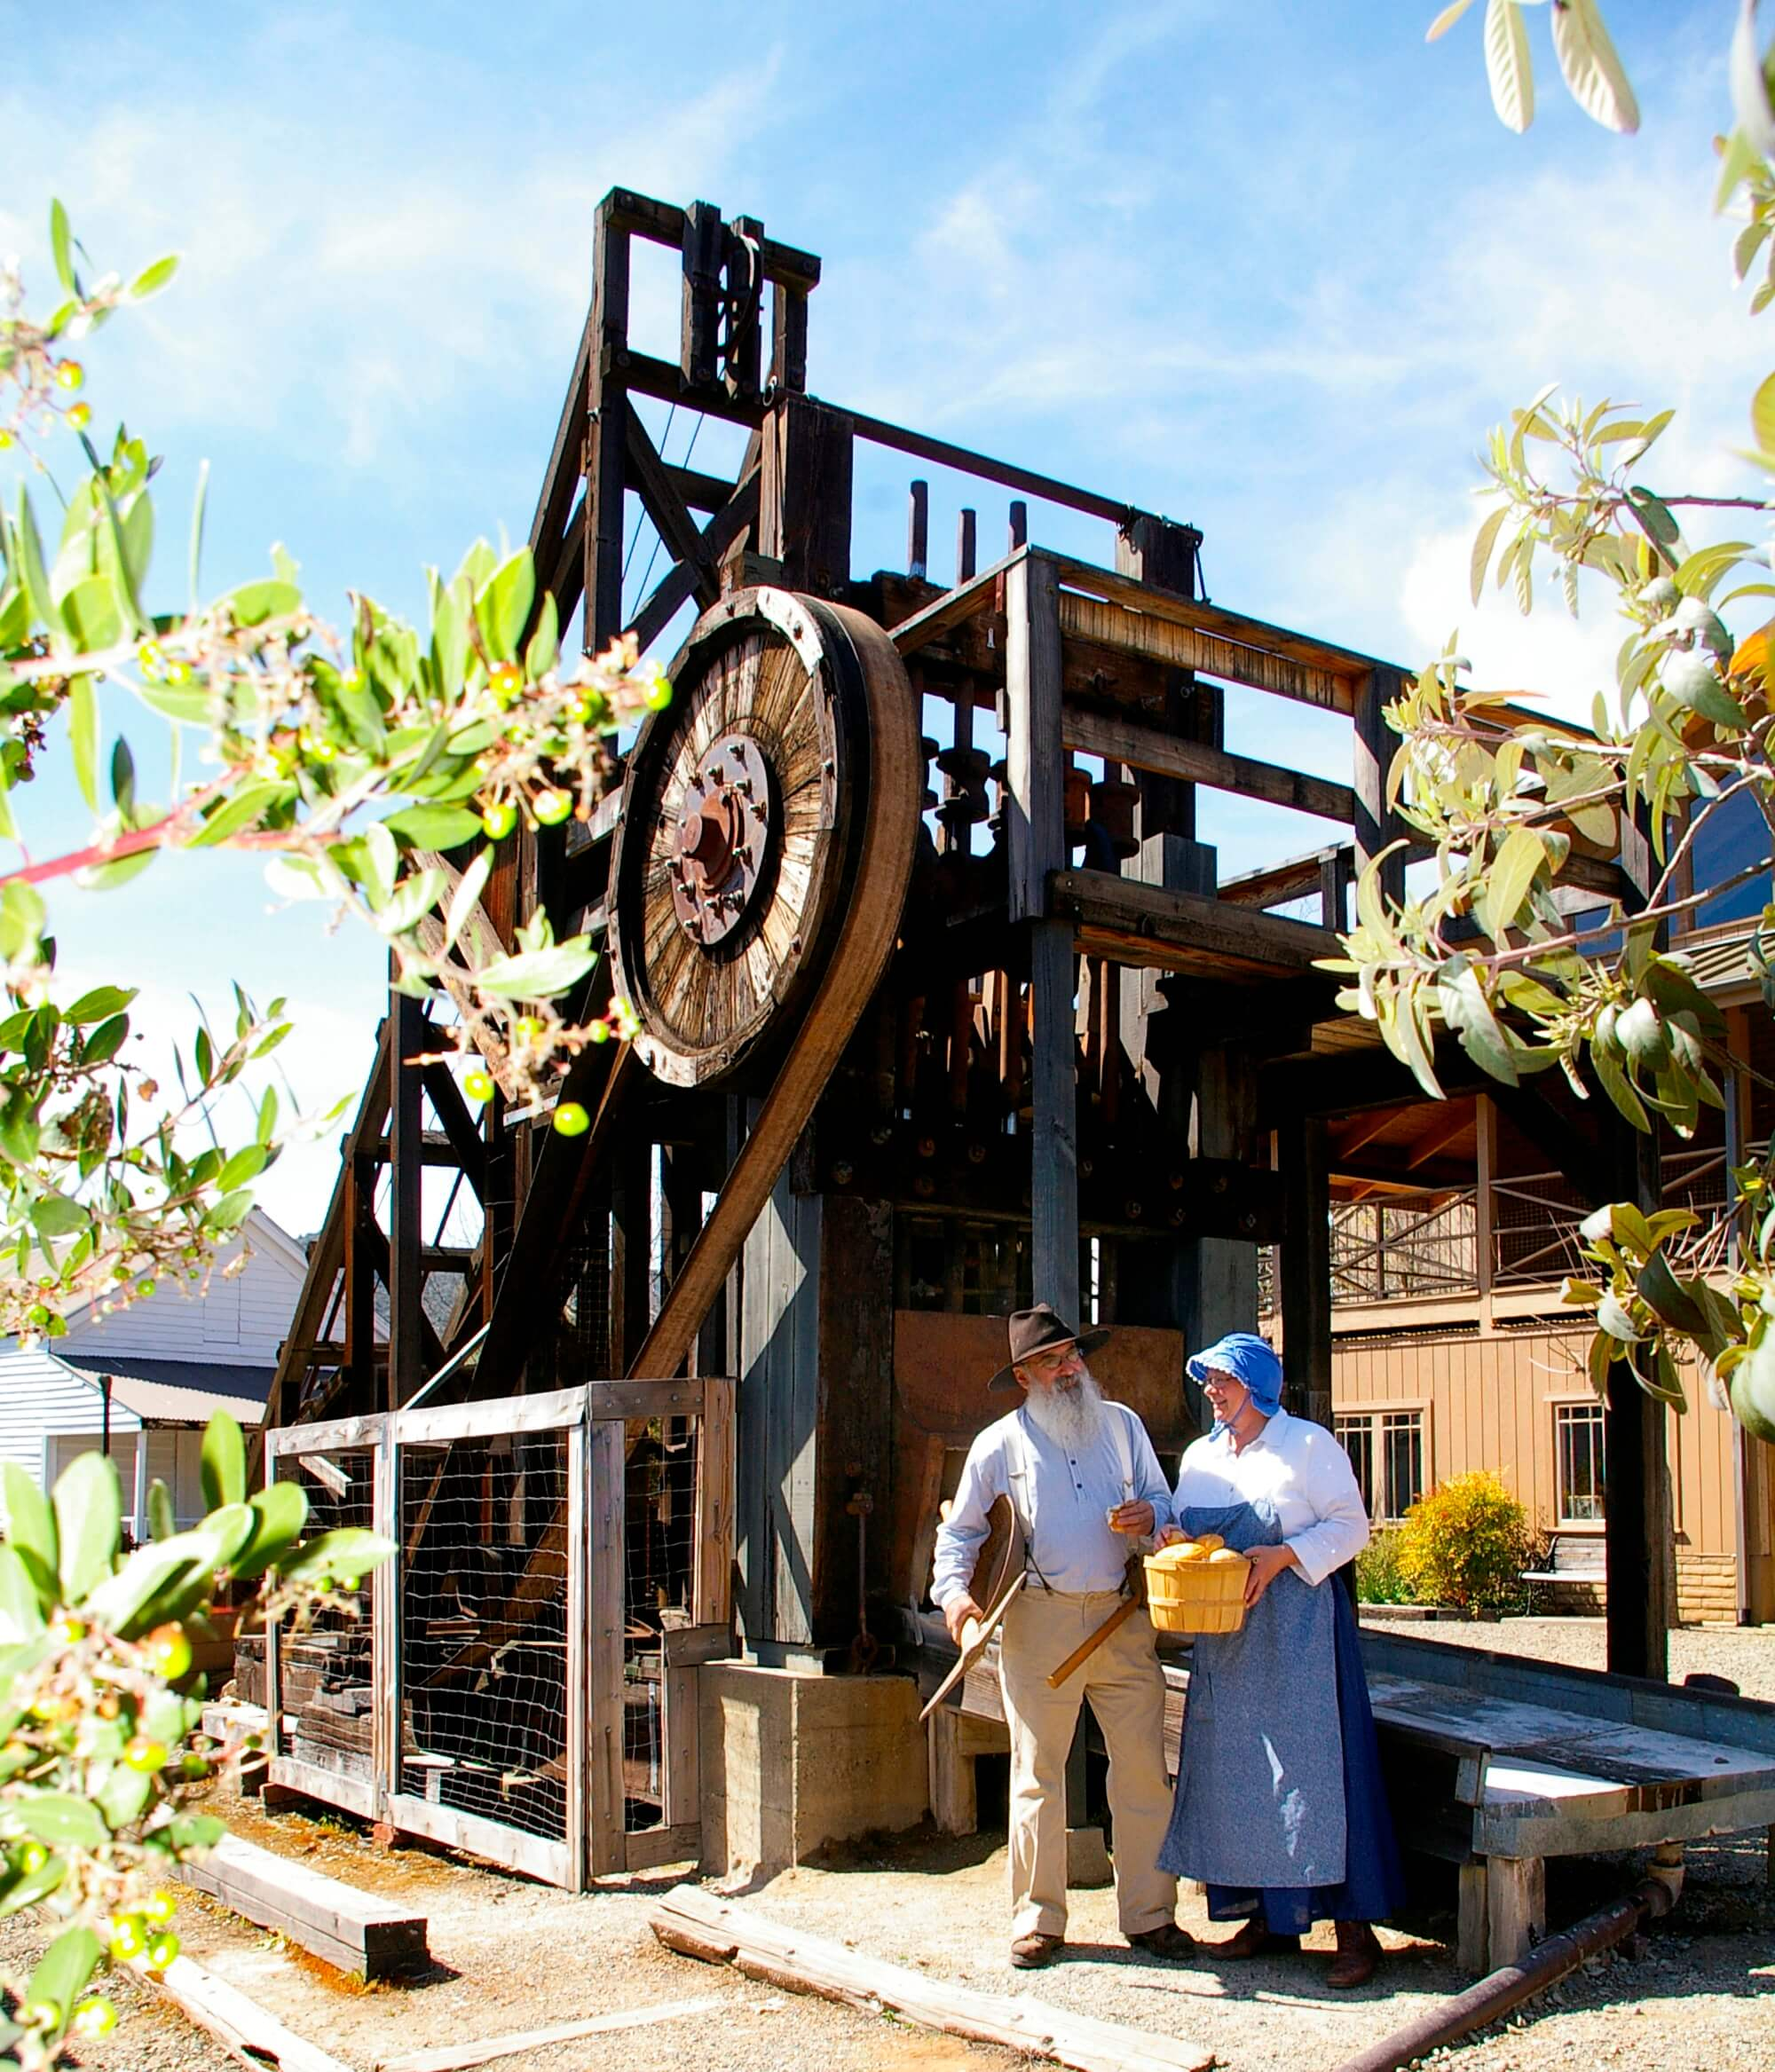 Fully operational stamp mill at the Mariposa Museum and History Center